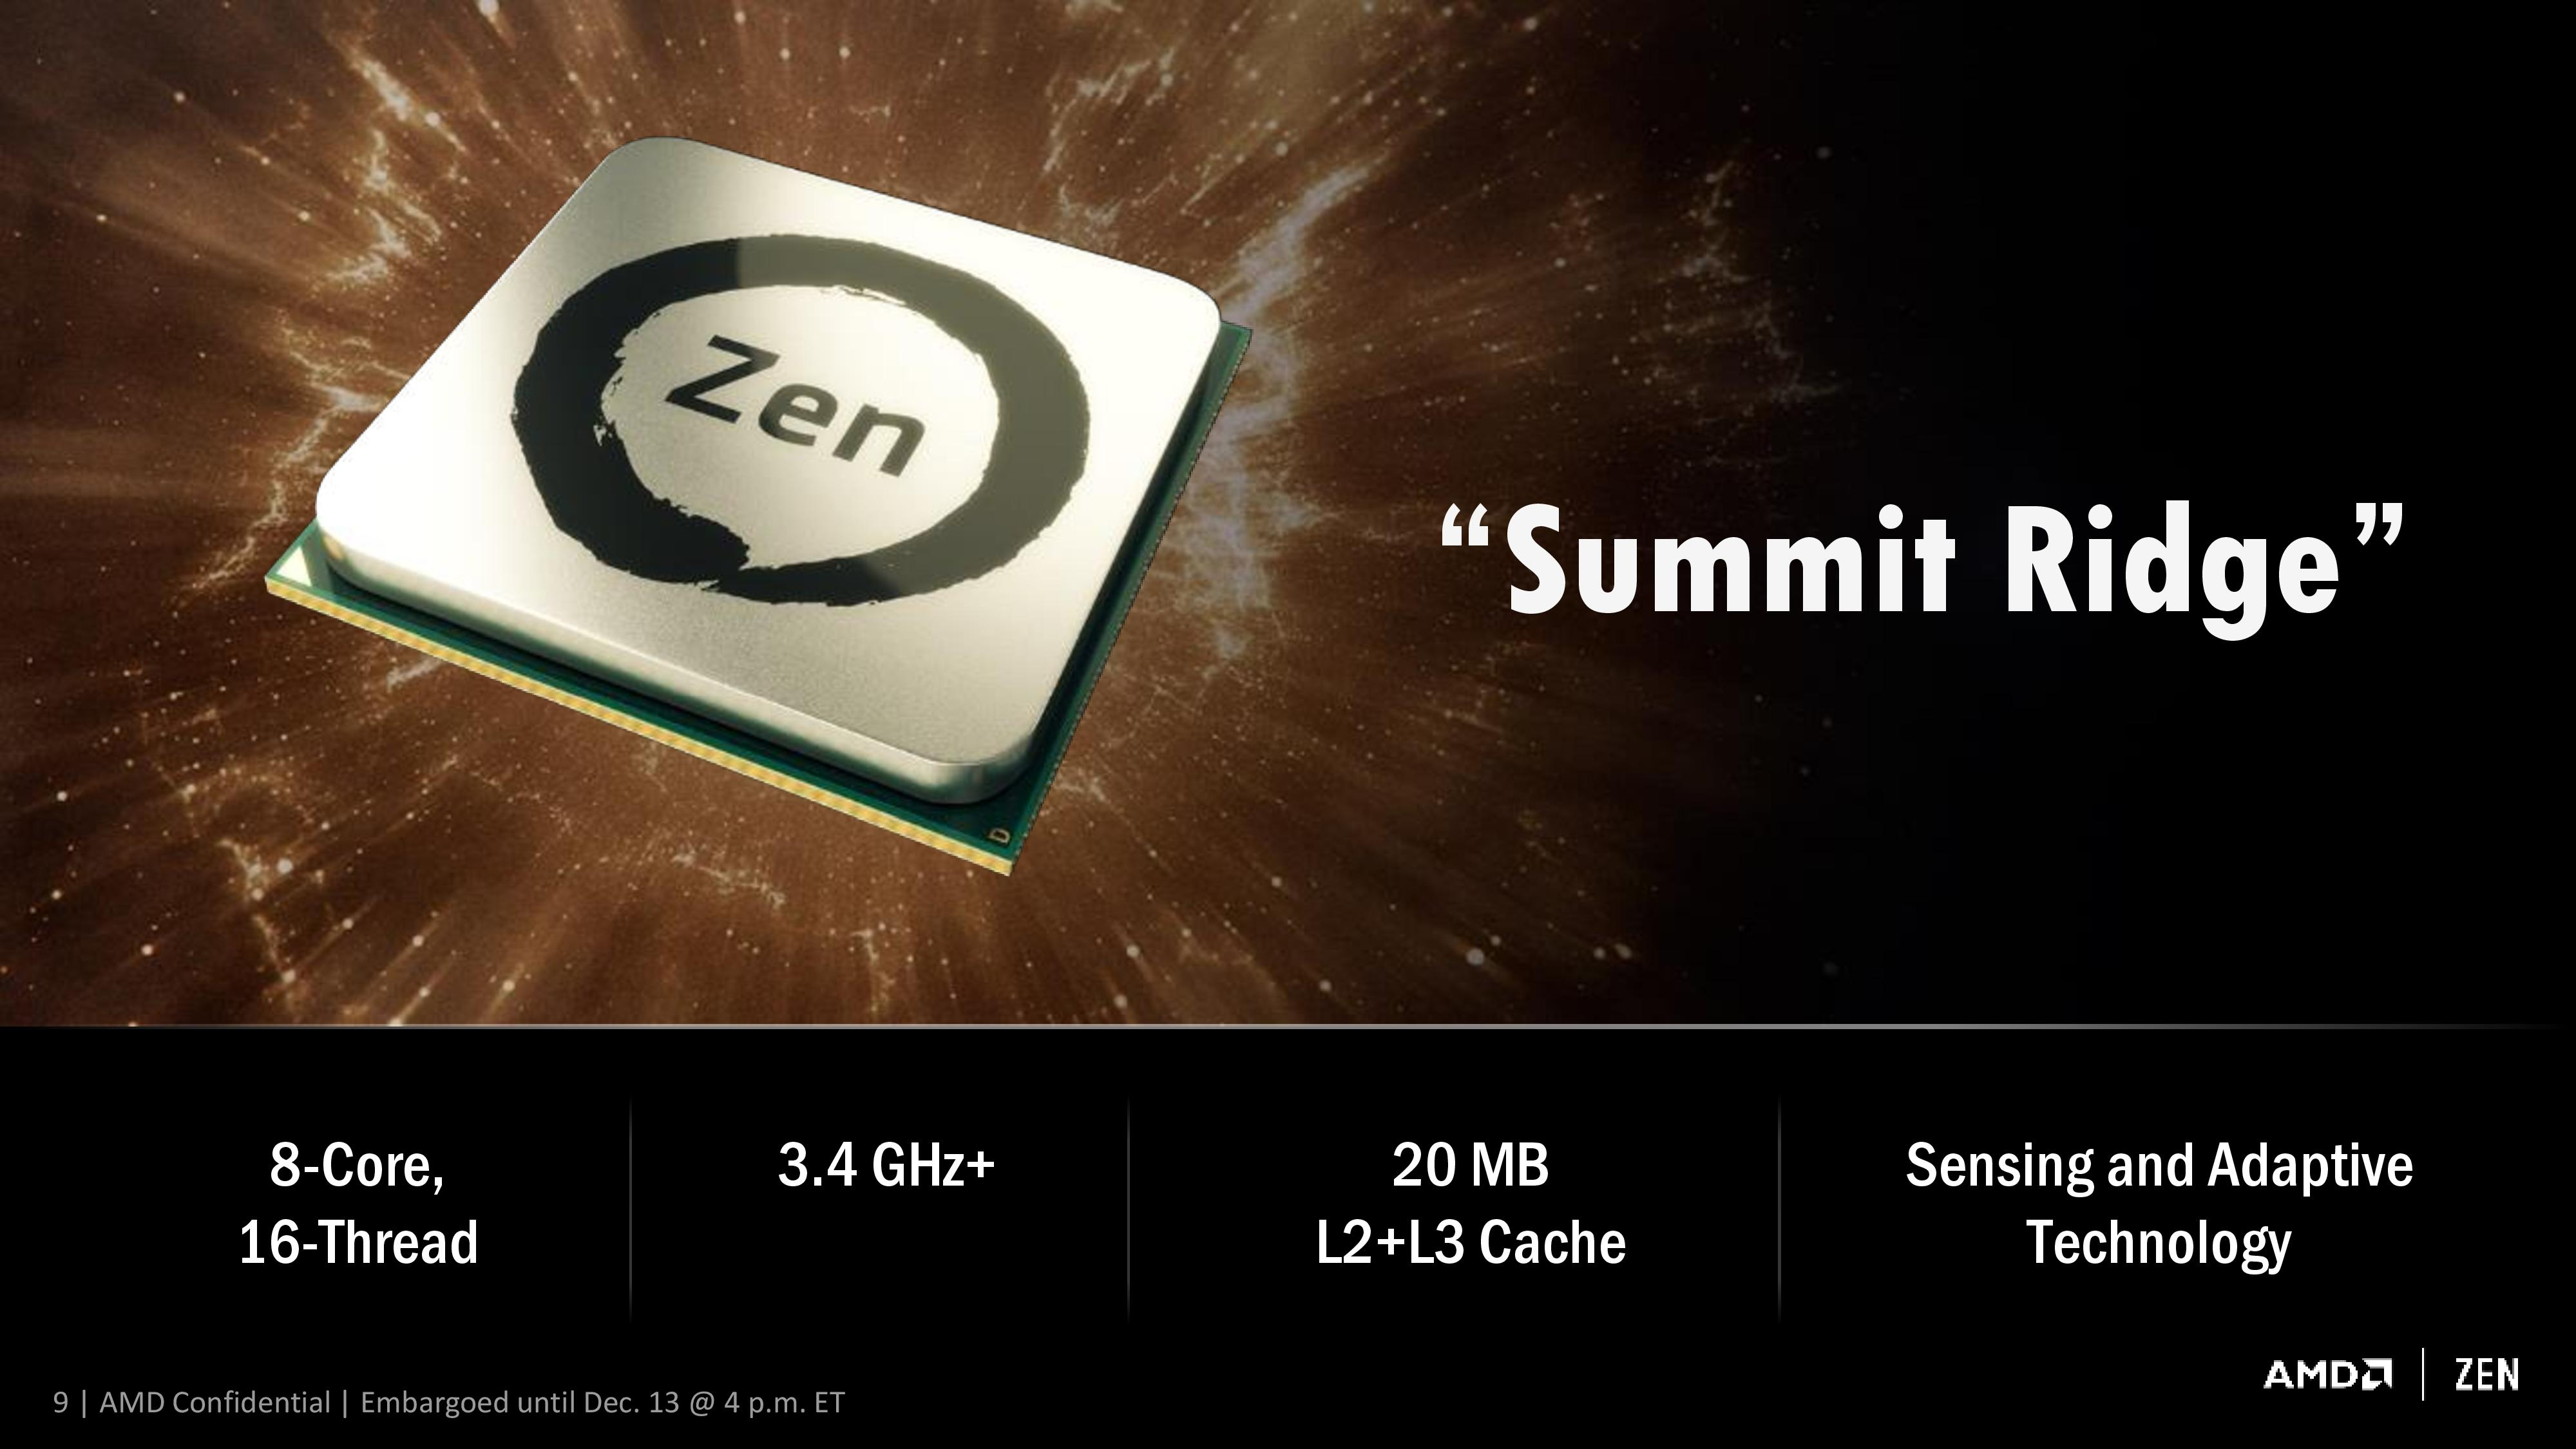 AMD Set to Launch Ryzen Before March 3rd, Meeting Q1 Target